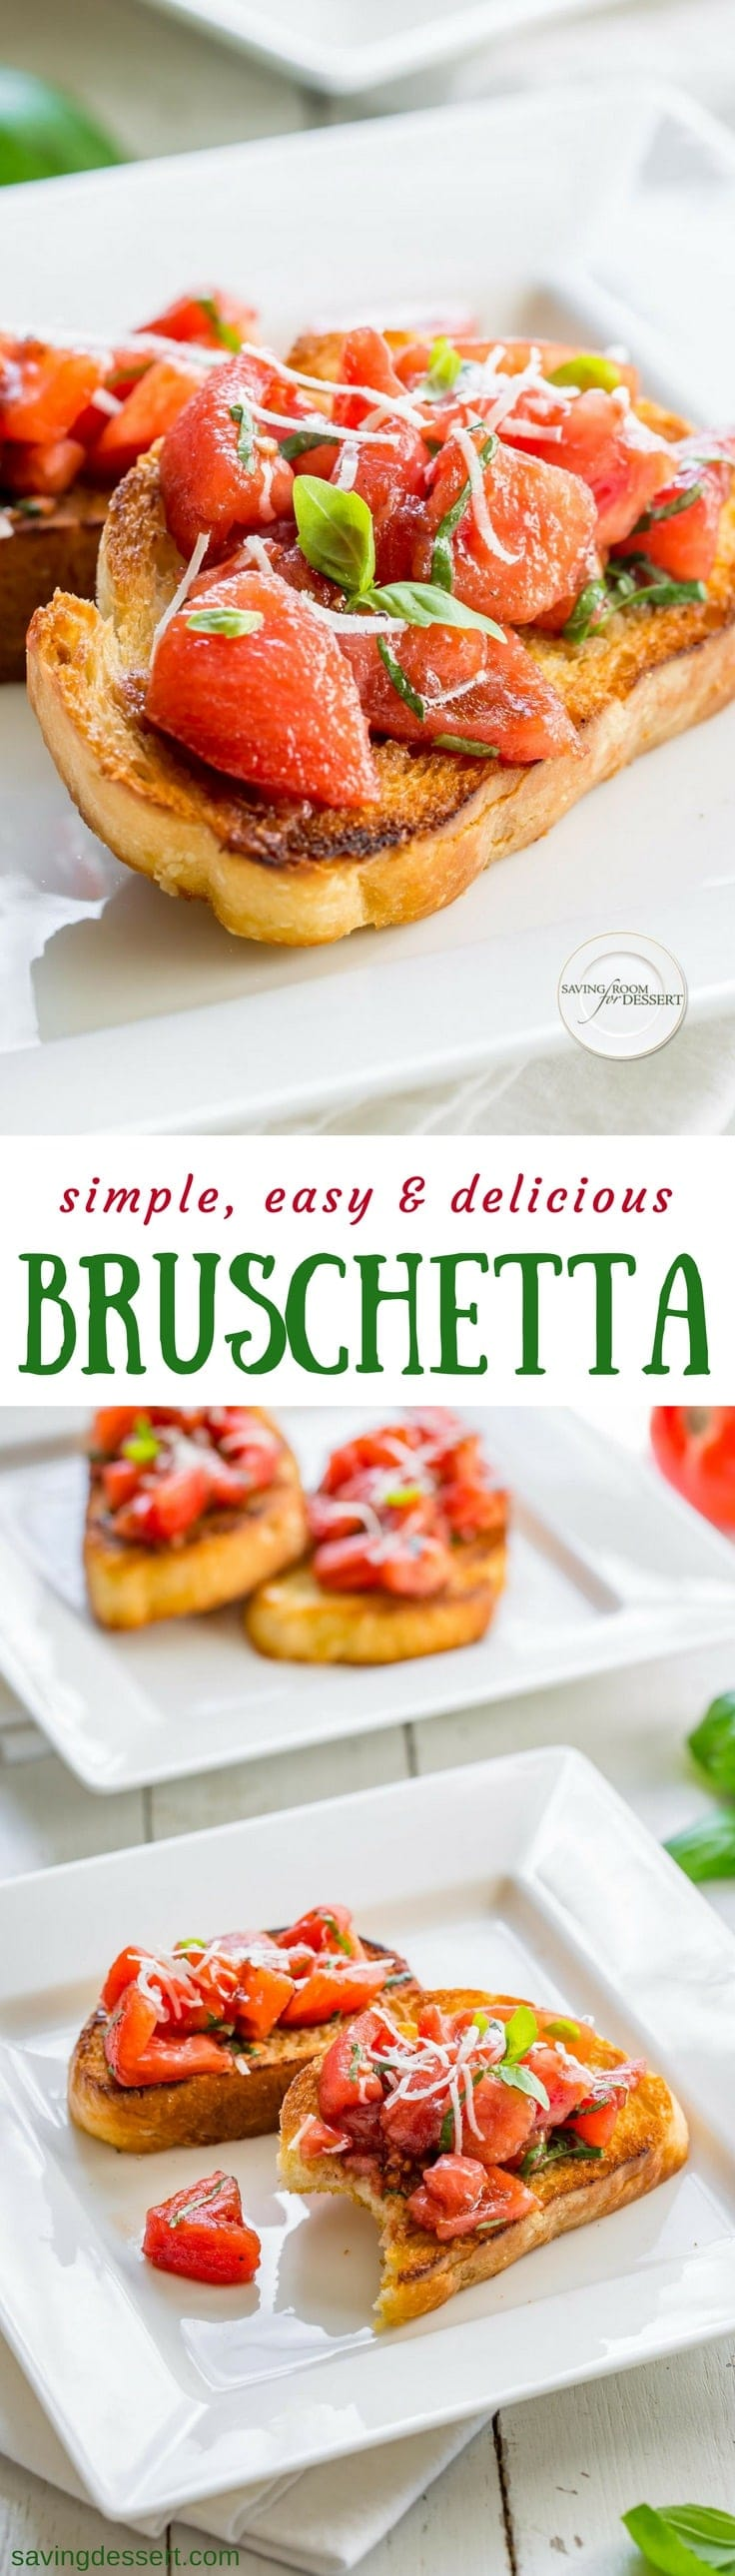 Always the perfect appetizer or accompaniment to delicious soup, our simple, easy and delicious Bruschetta recipe is so much more than tomatoes on toast! www.savingdessert.com #savingdessert.com #bruschetta #tomatoes #italian #appetizer #bread